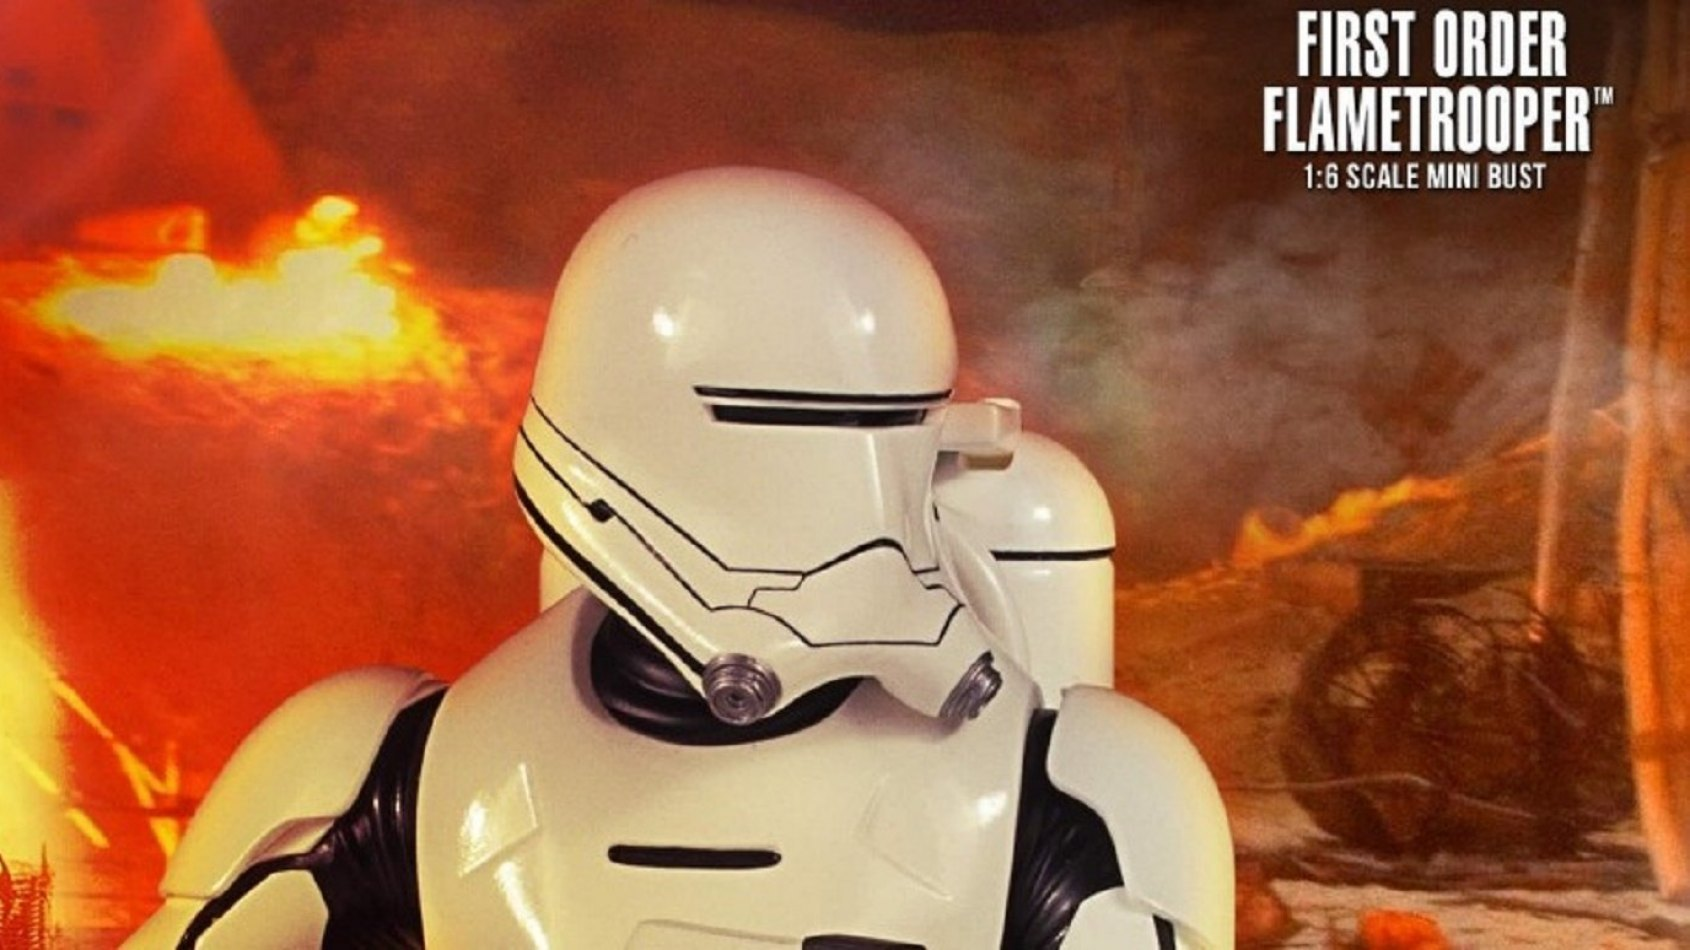 Le Flametrooper First Order Mini Buste de Gentle Giant en pré-commande